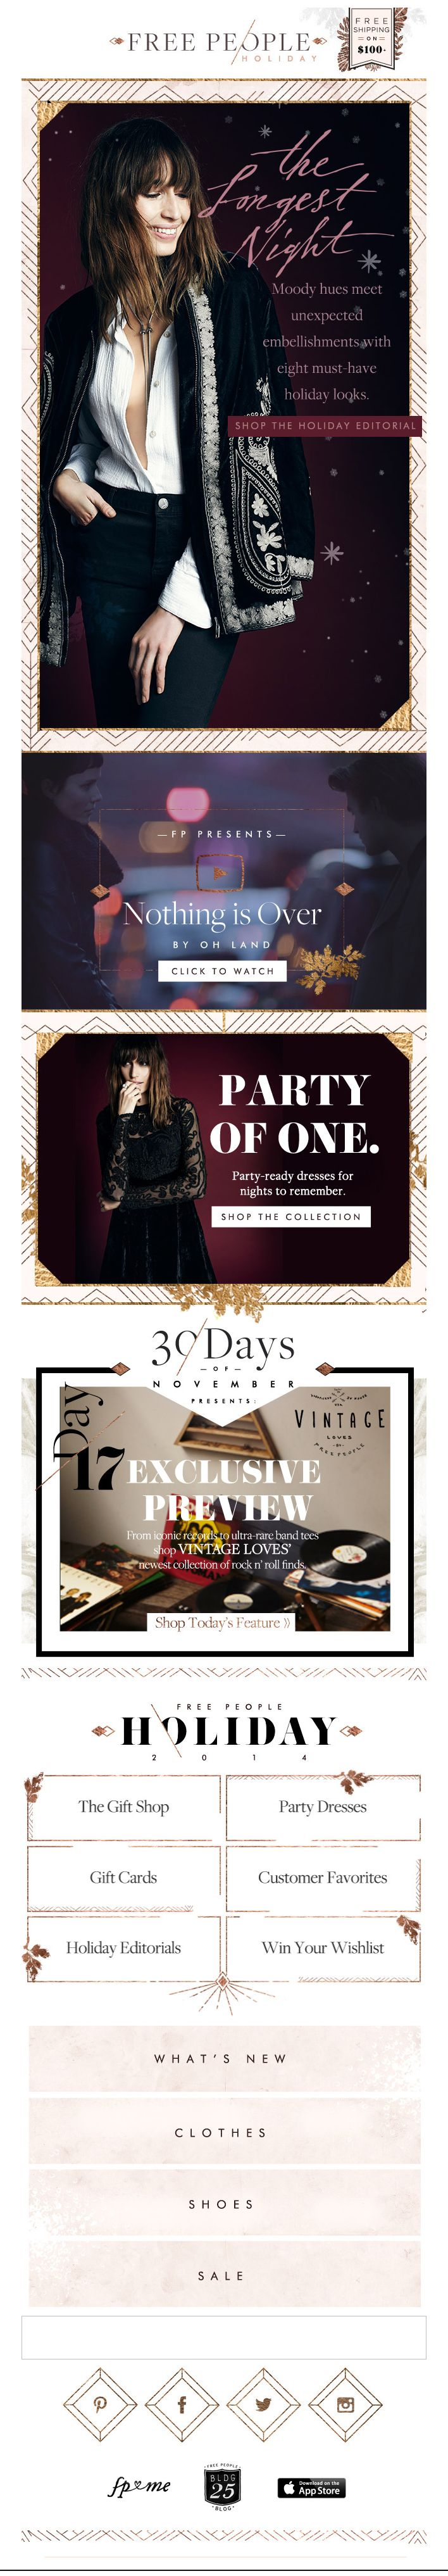 Newsletter Free People Christmas